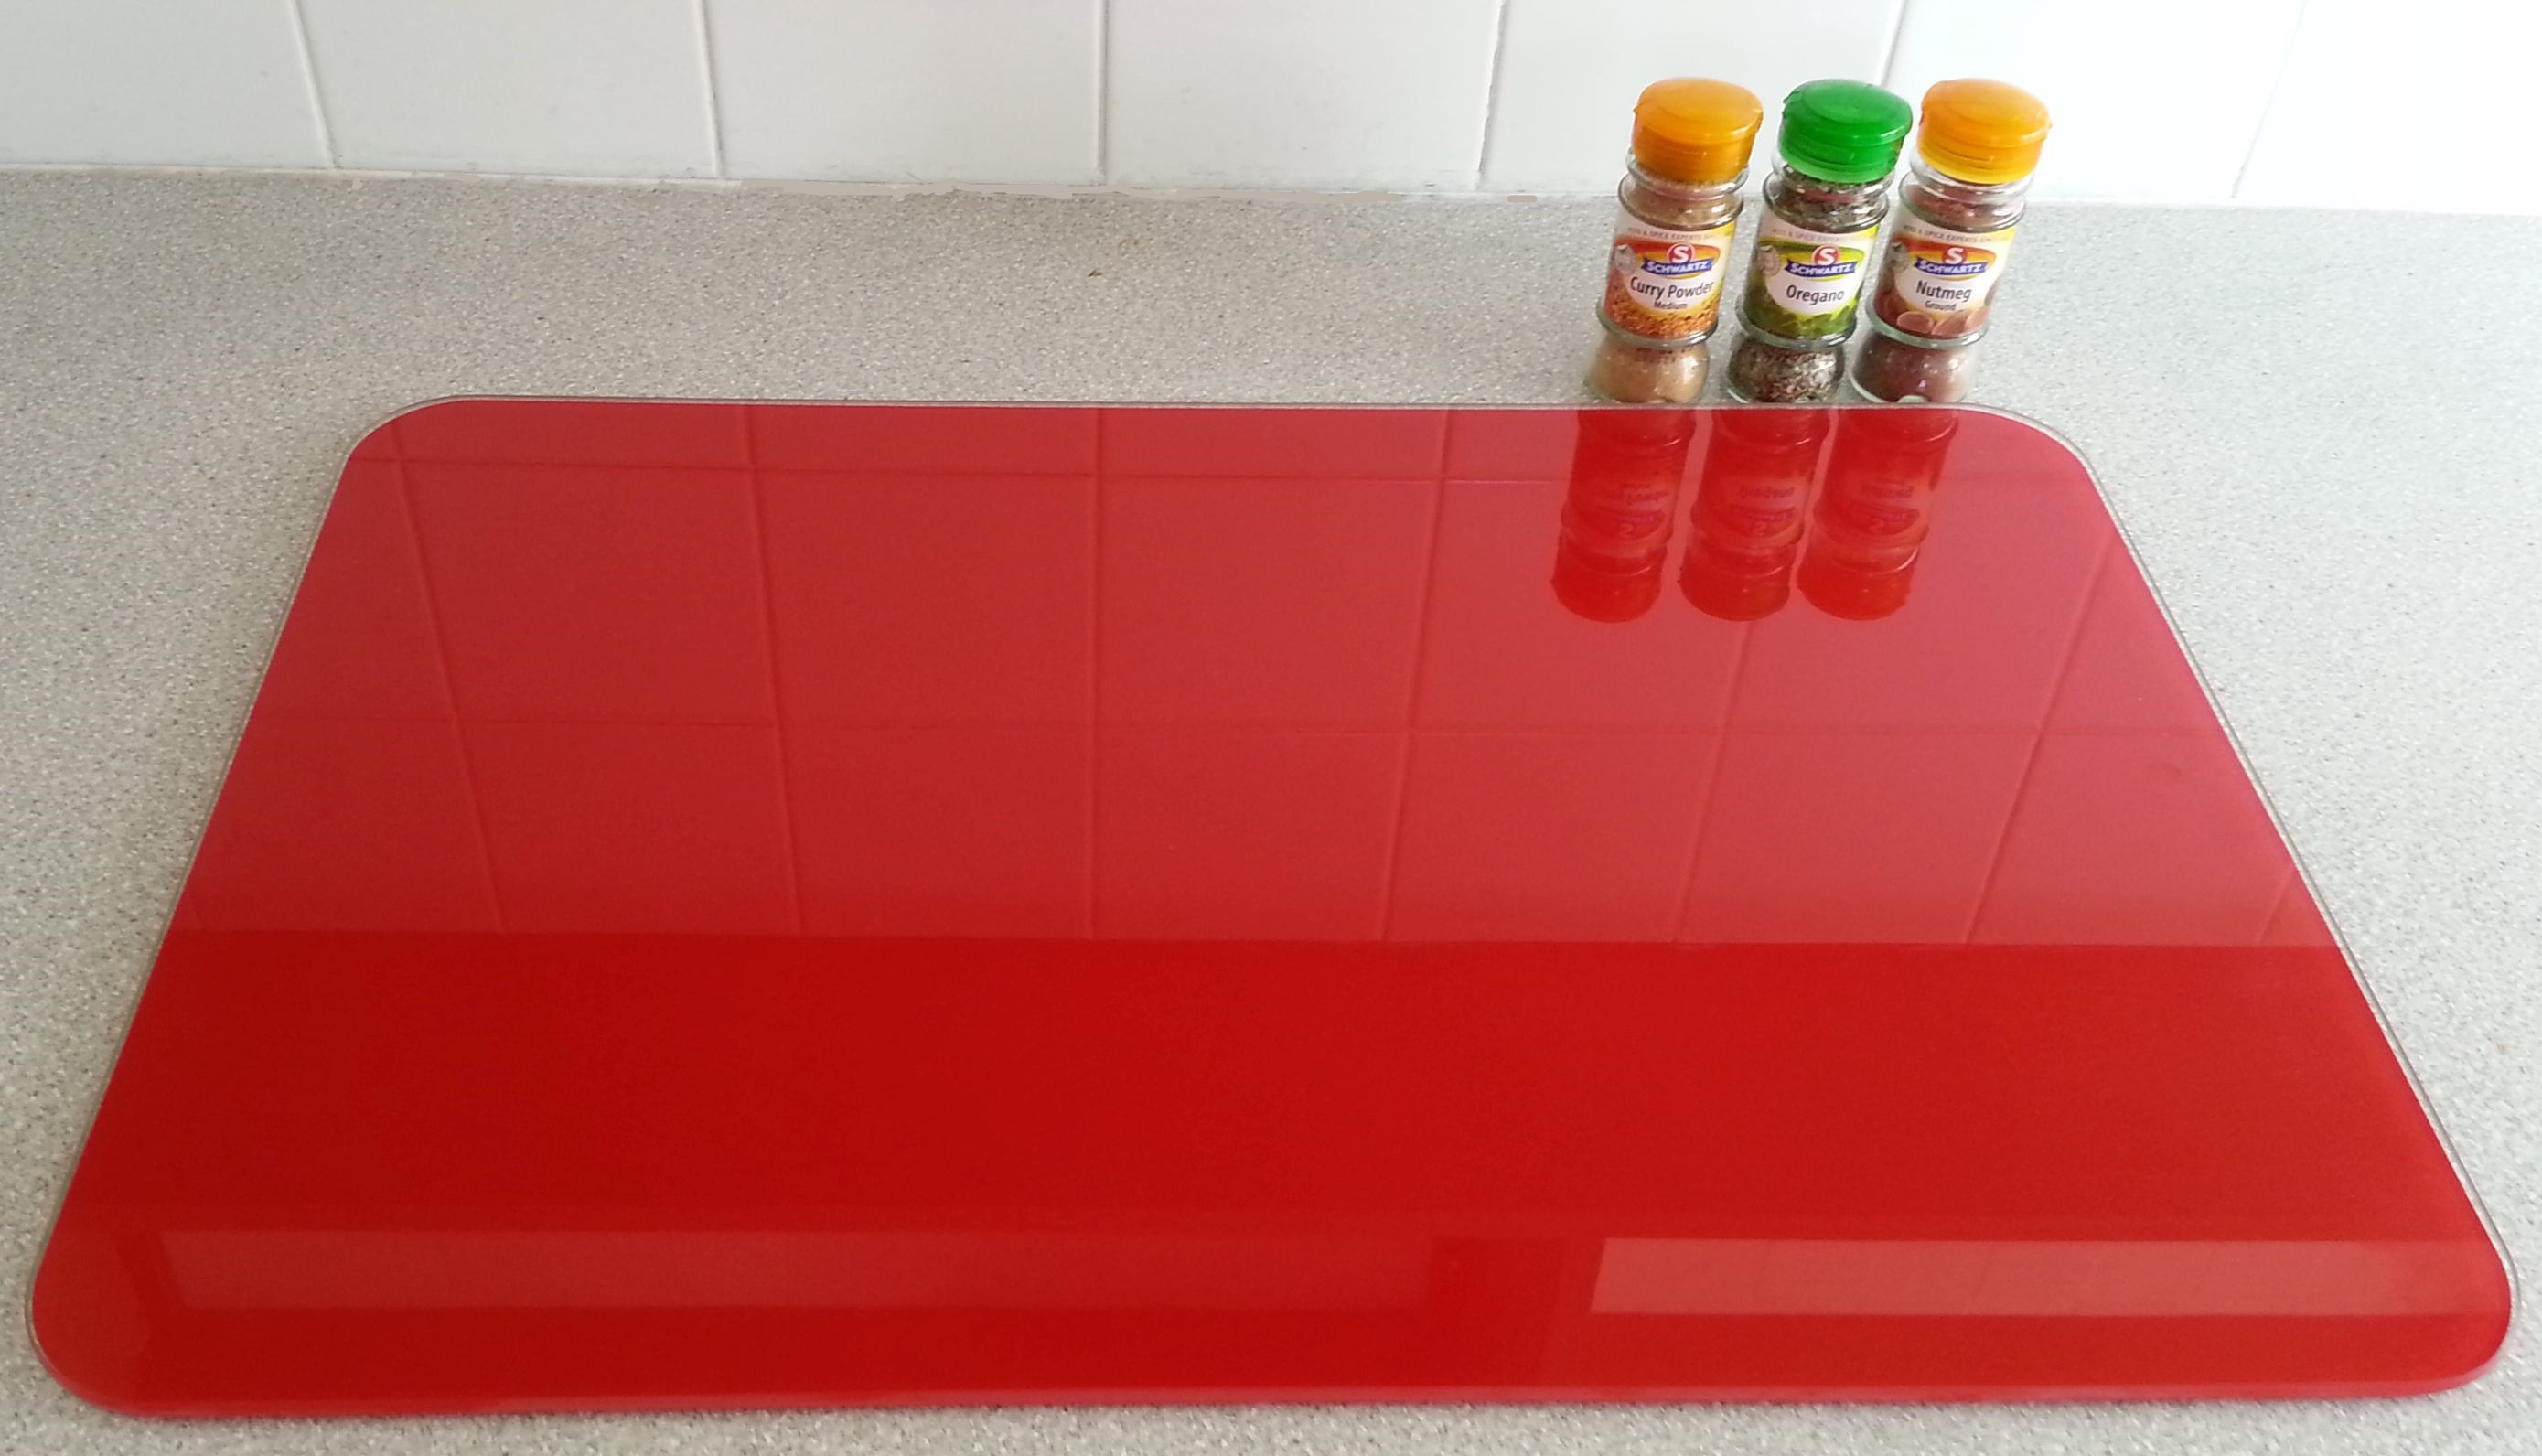 Charmant Float Glass Chopping Boards. View Larger Image